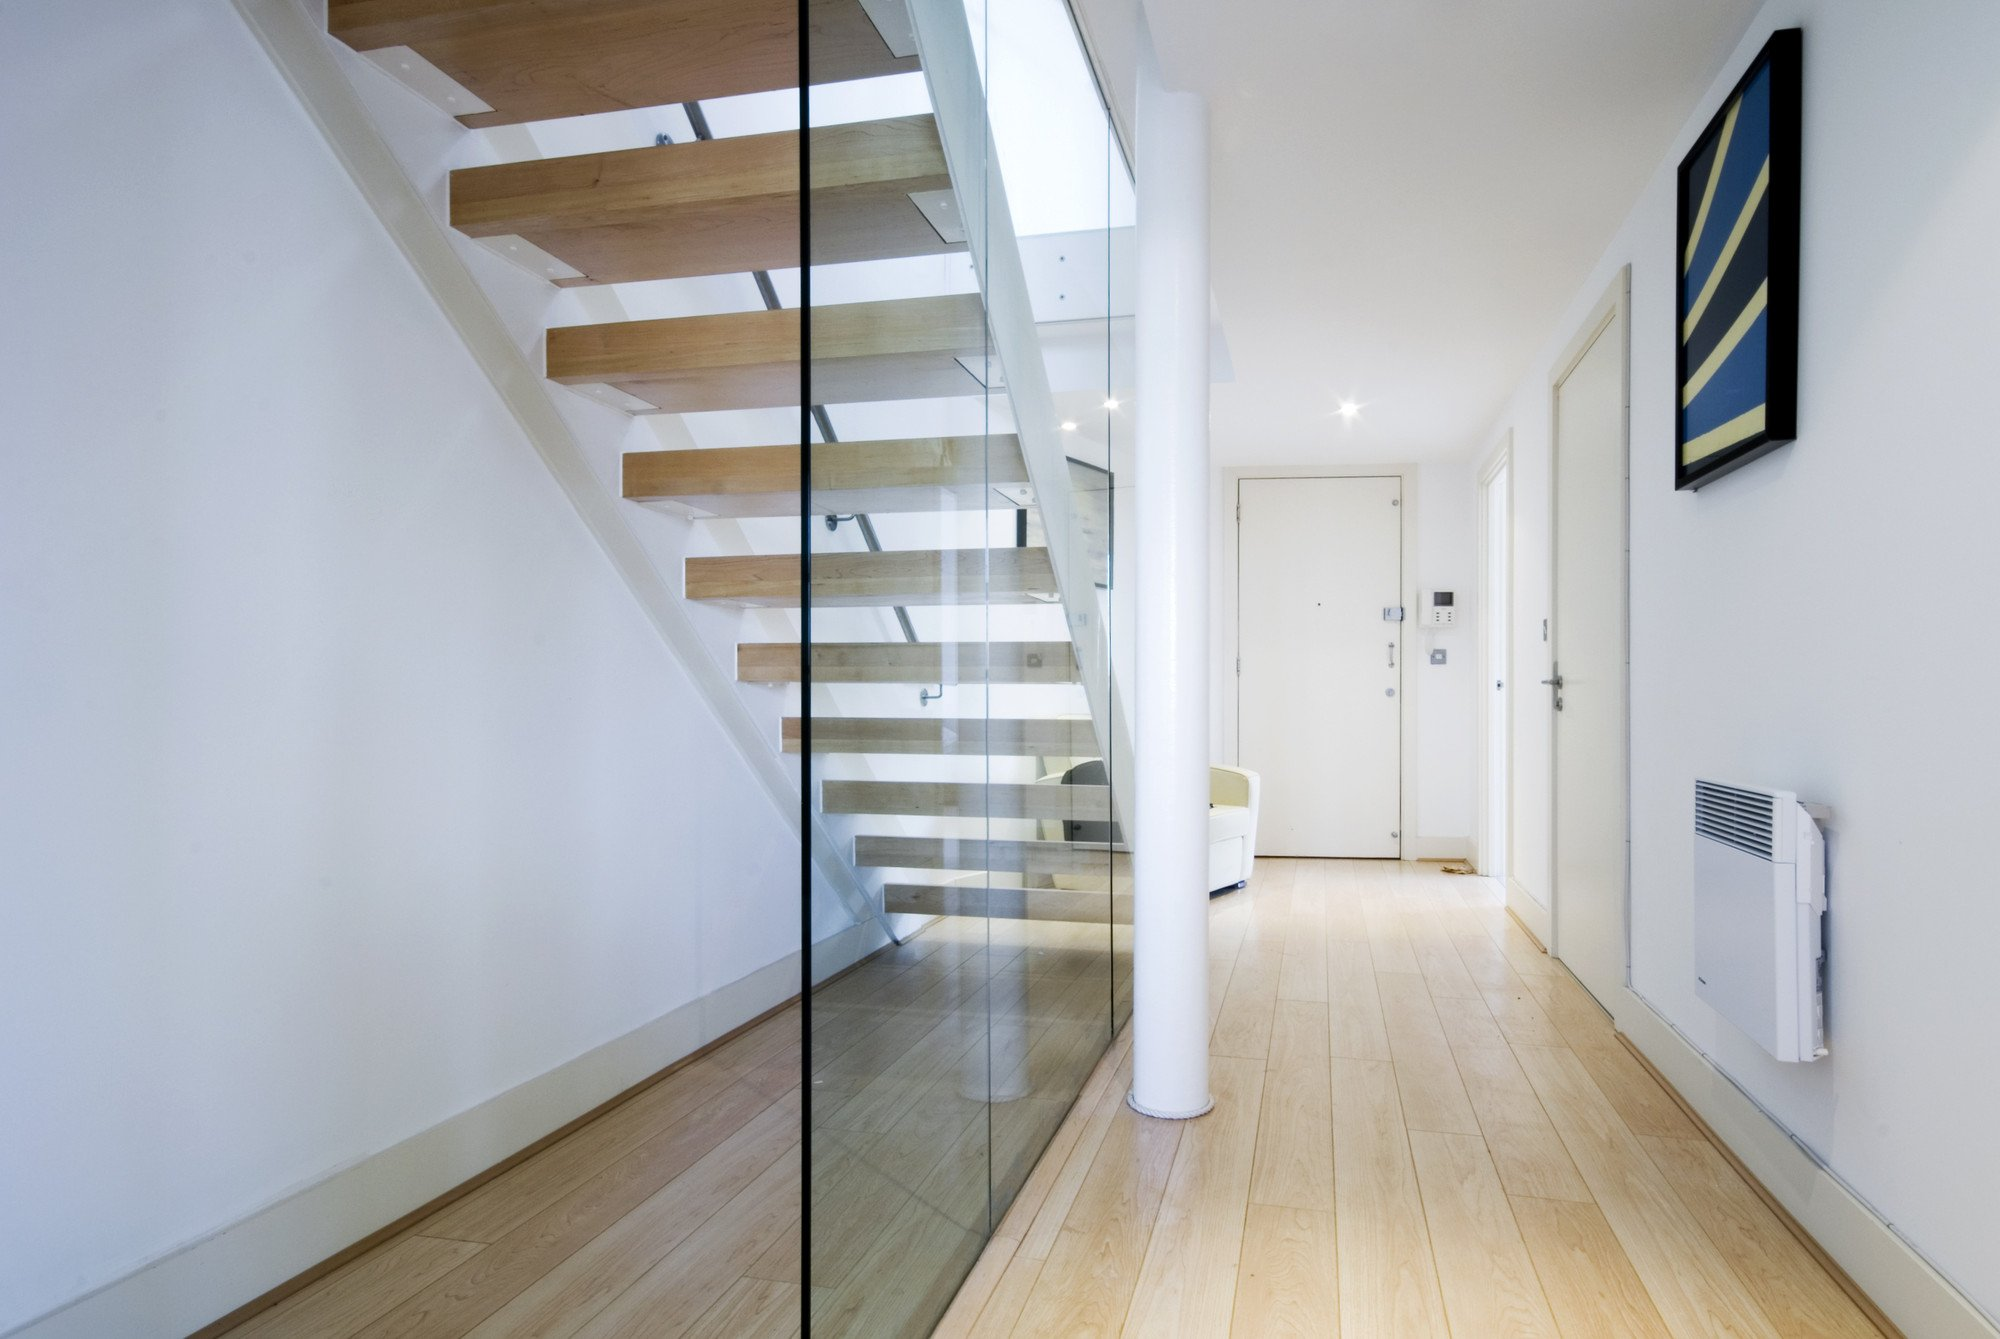 Bespoke glass balustrade